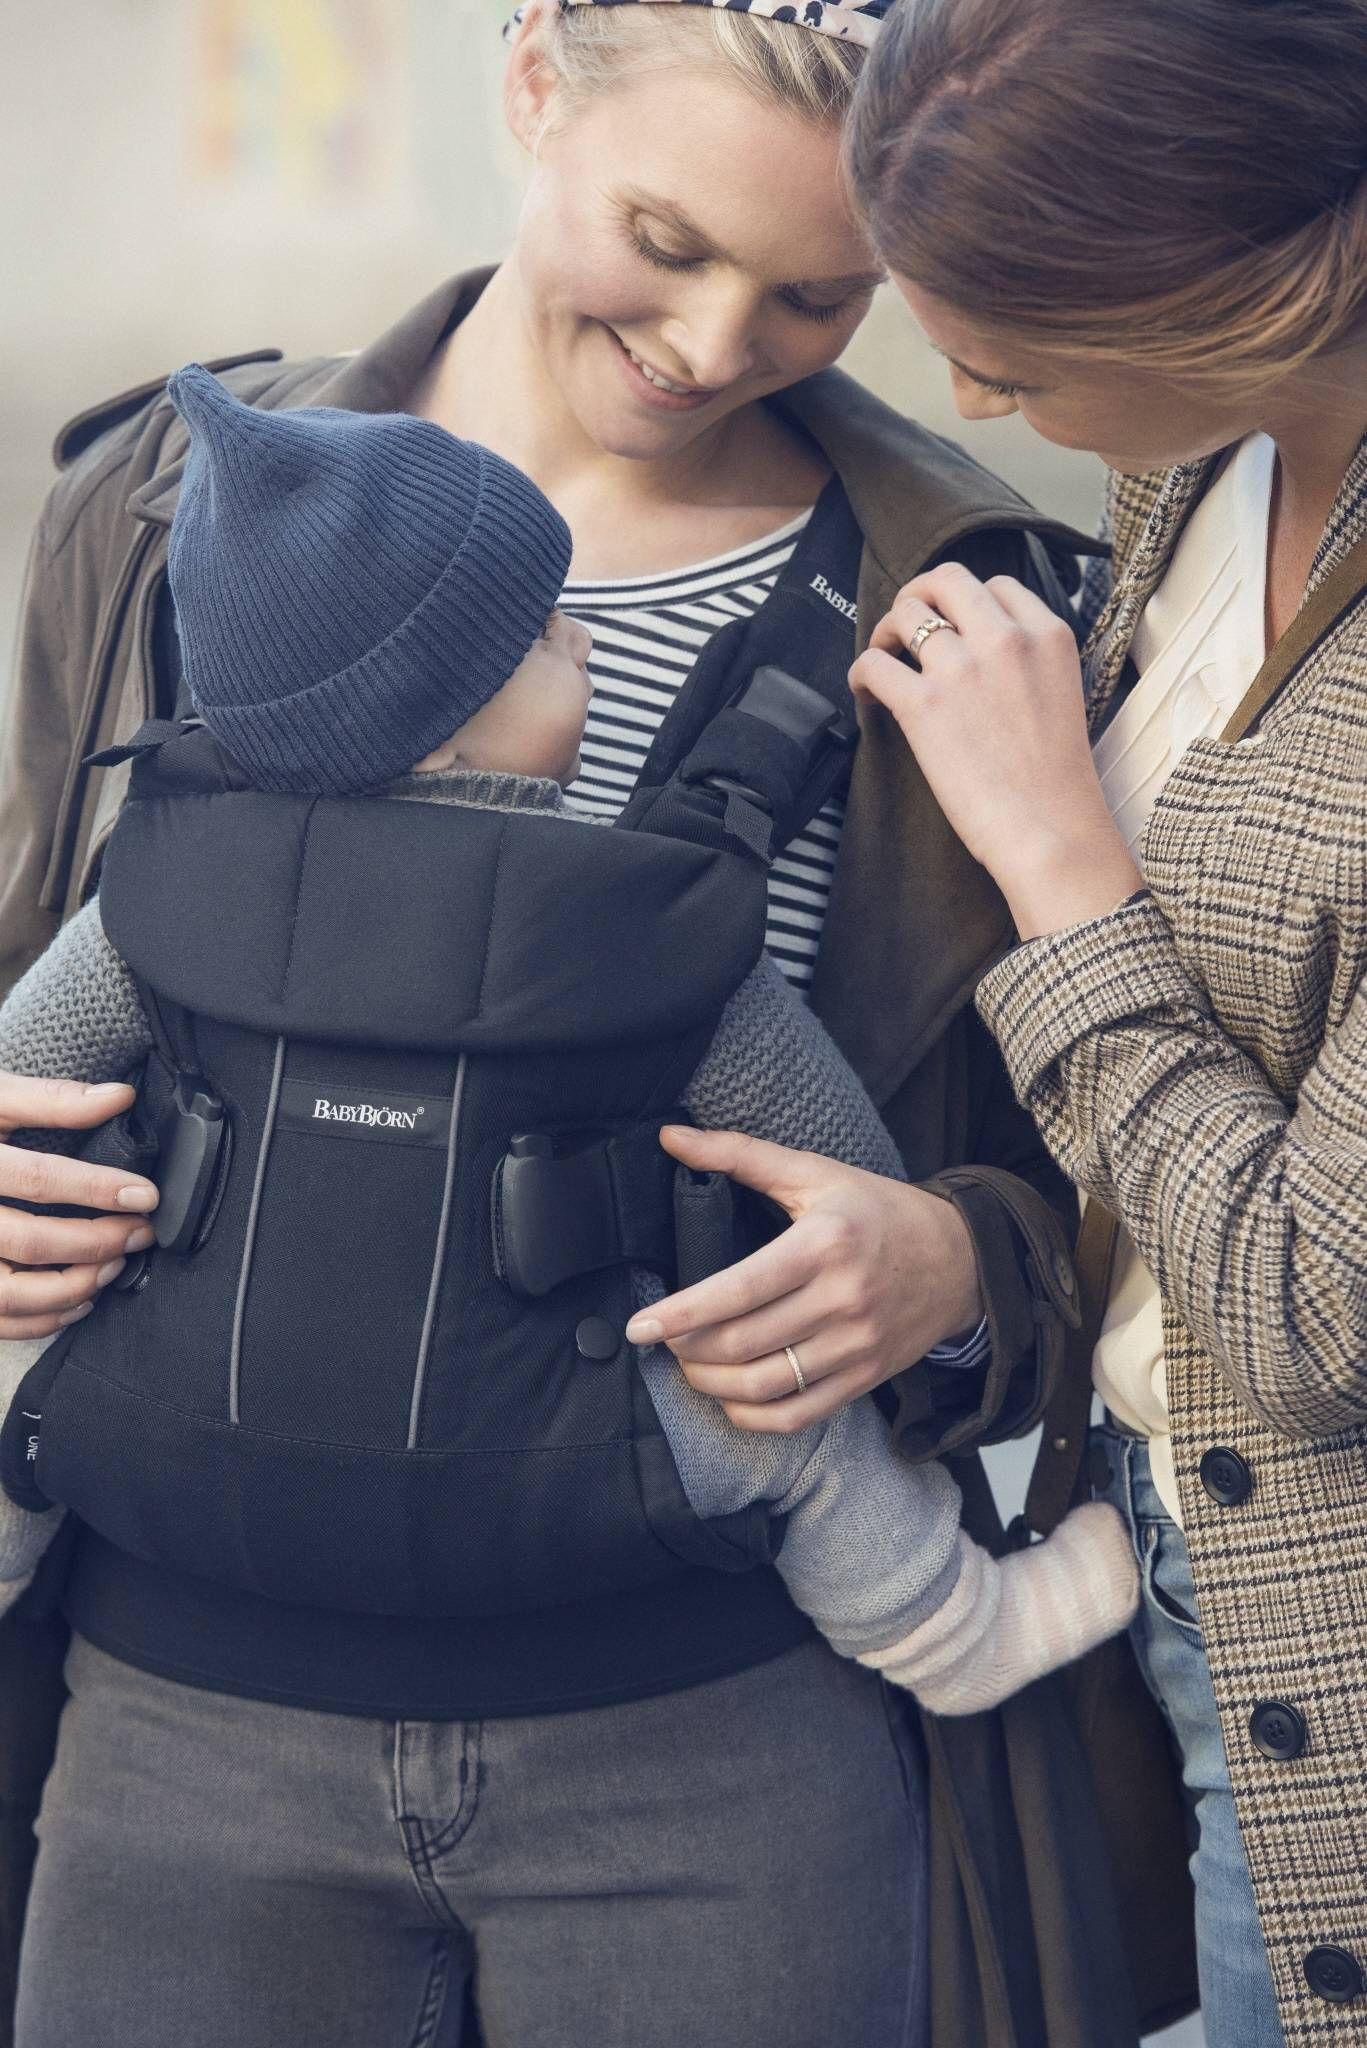 Win A Babybjorn Baby Carrier One Worth 229 95 Baby Bjorn Baby Carrier Ergonomic Baby Carrier